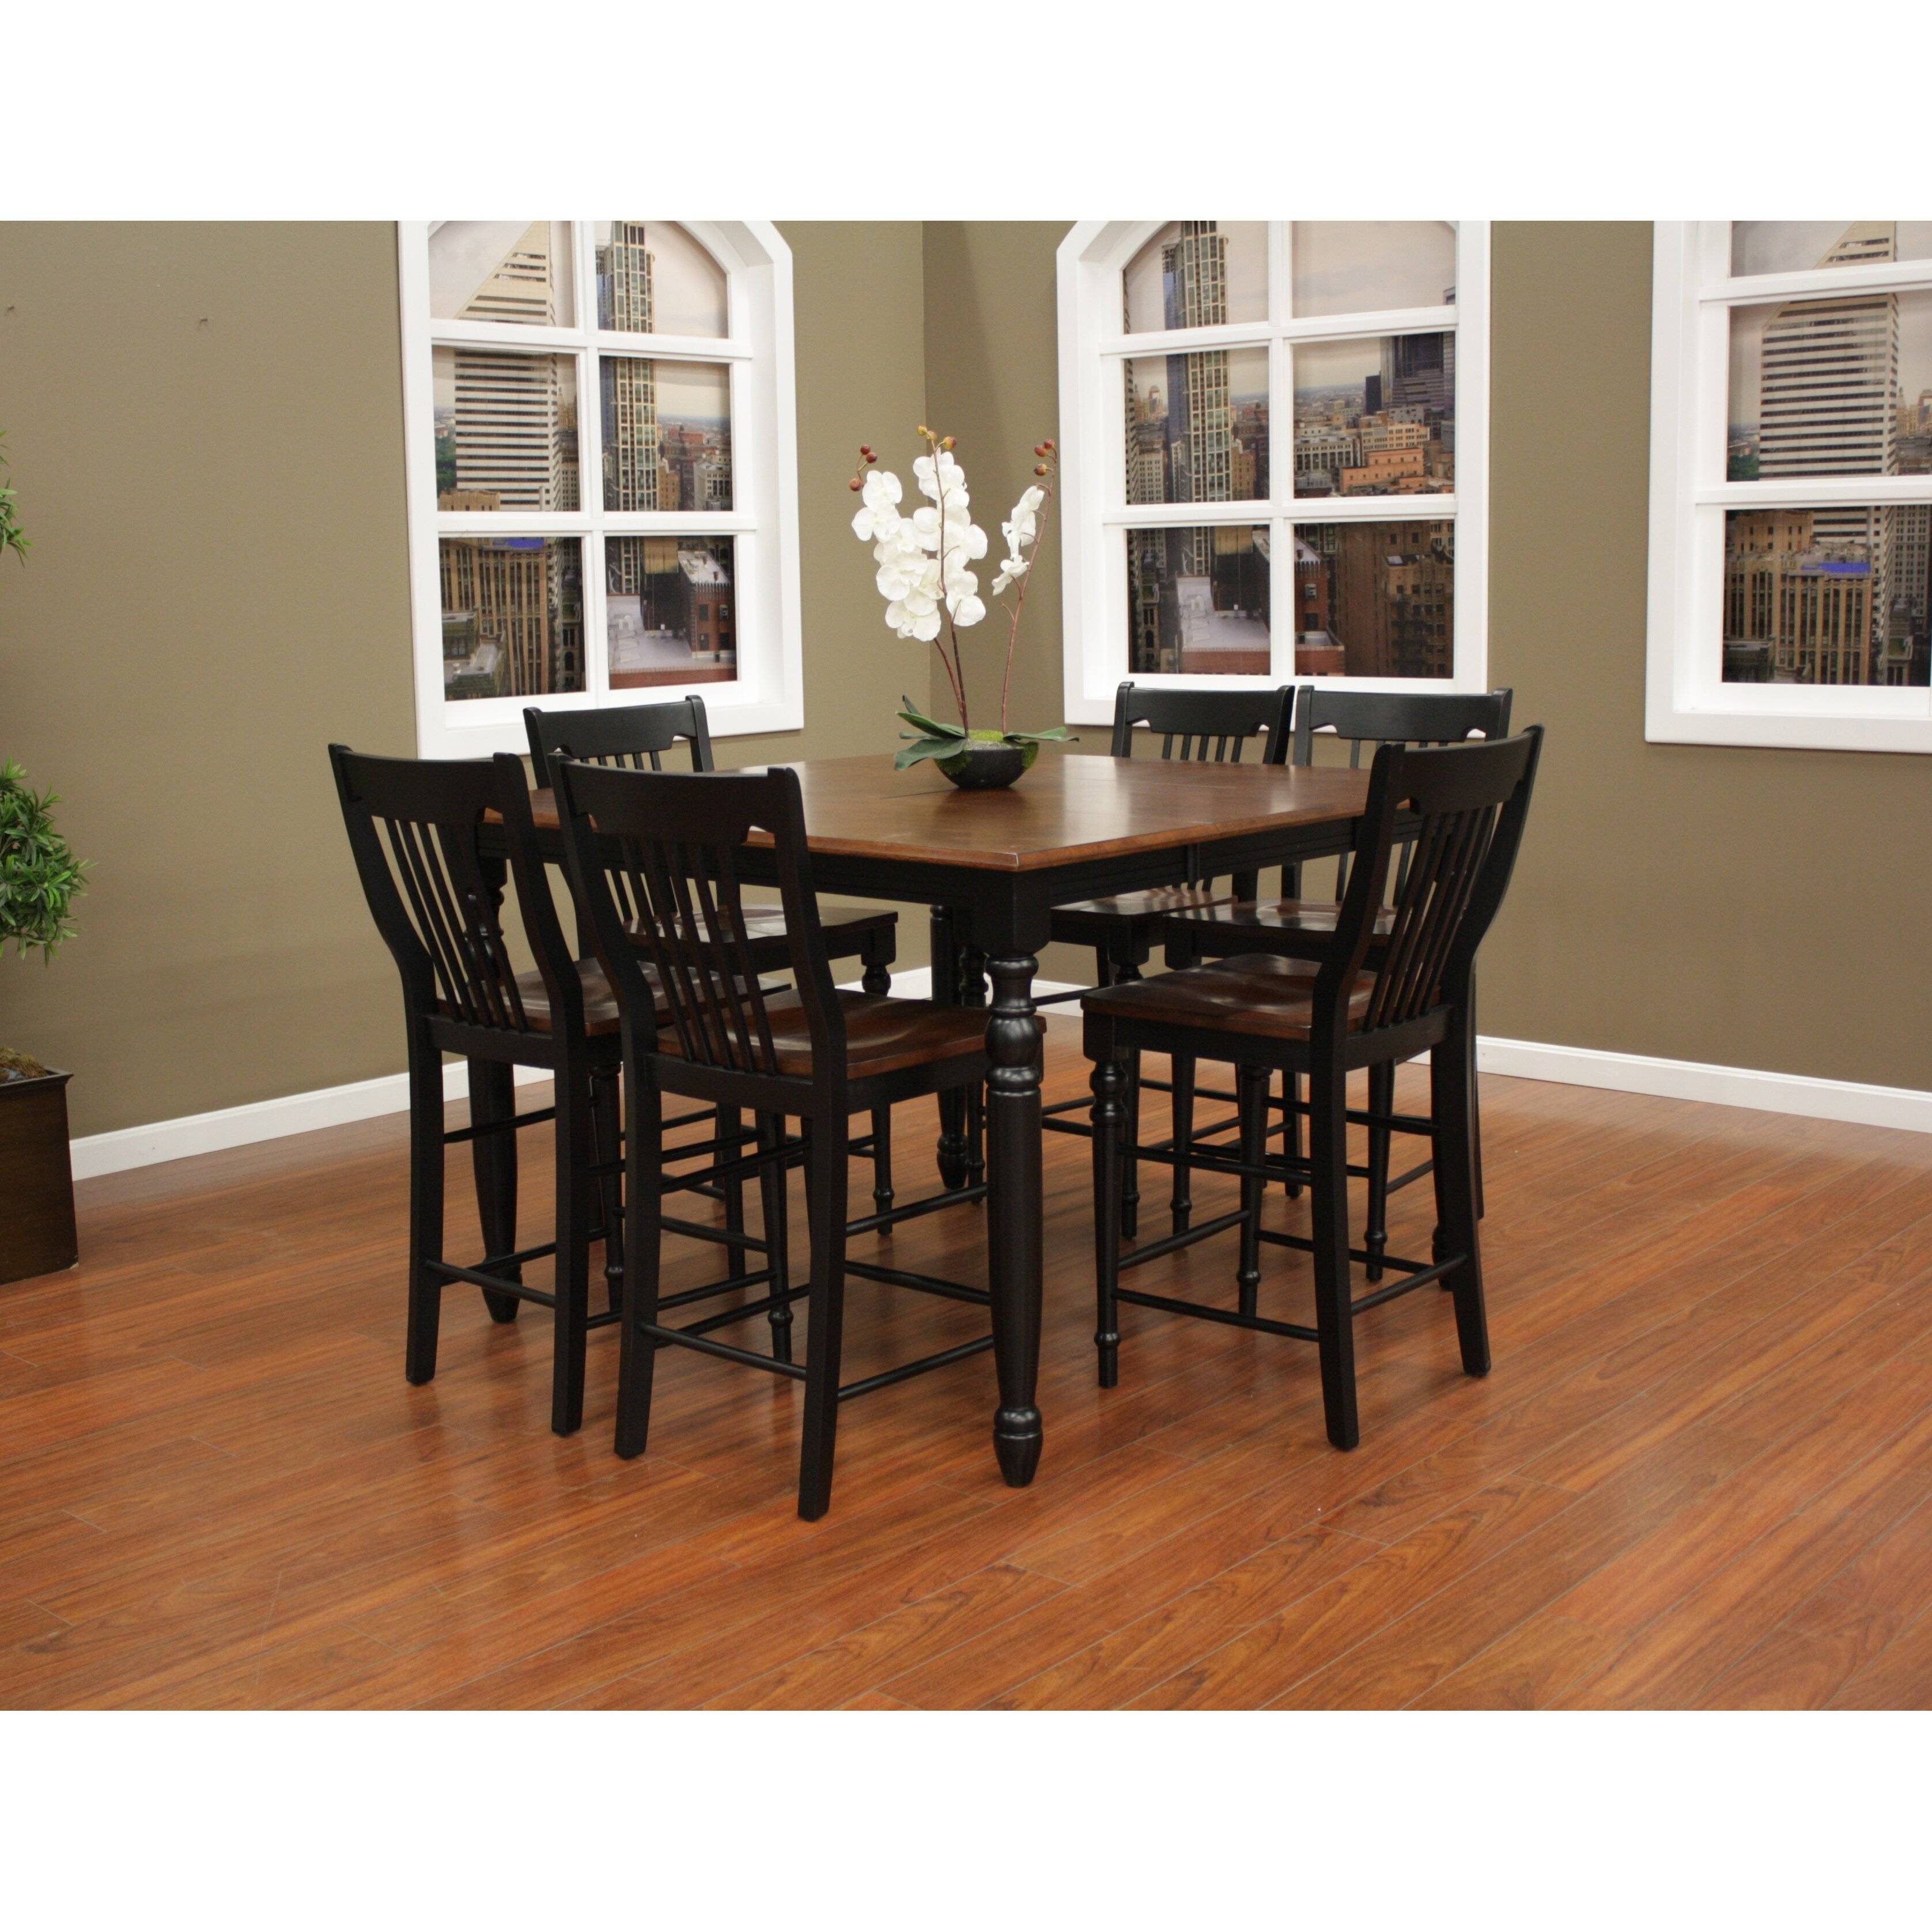 7 Piece Counter Height Dining Set At American Furniture: American Heritage Berkshire 7 Piece Counter Height Pub Set